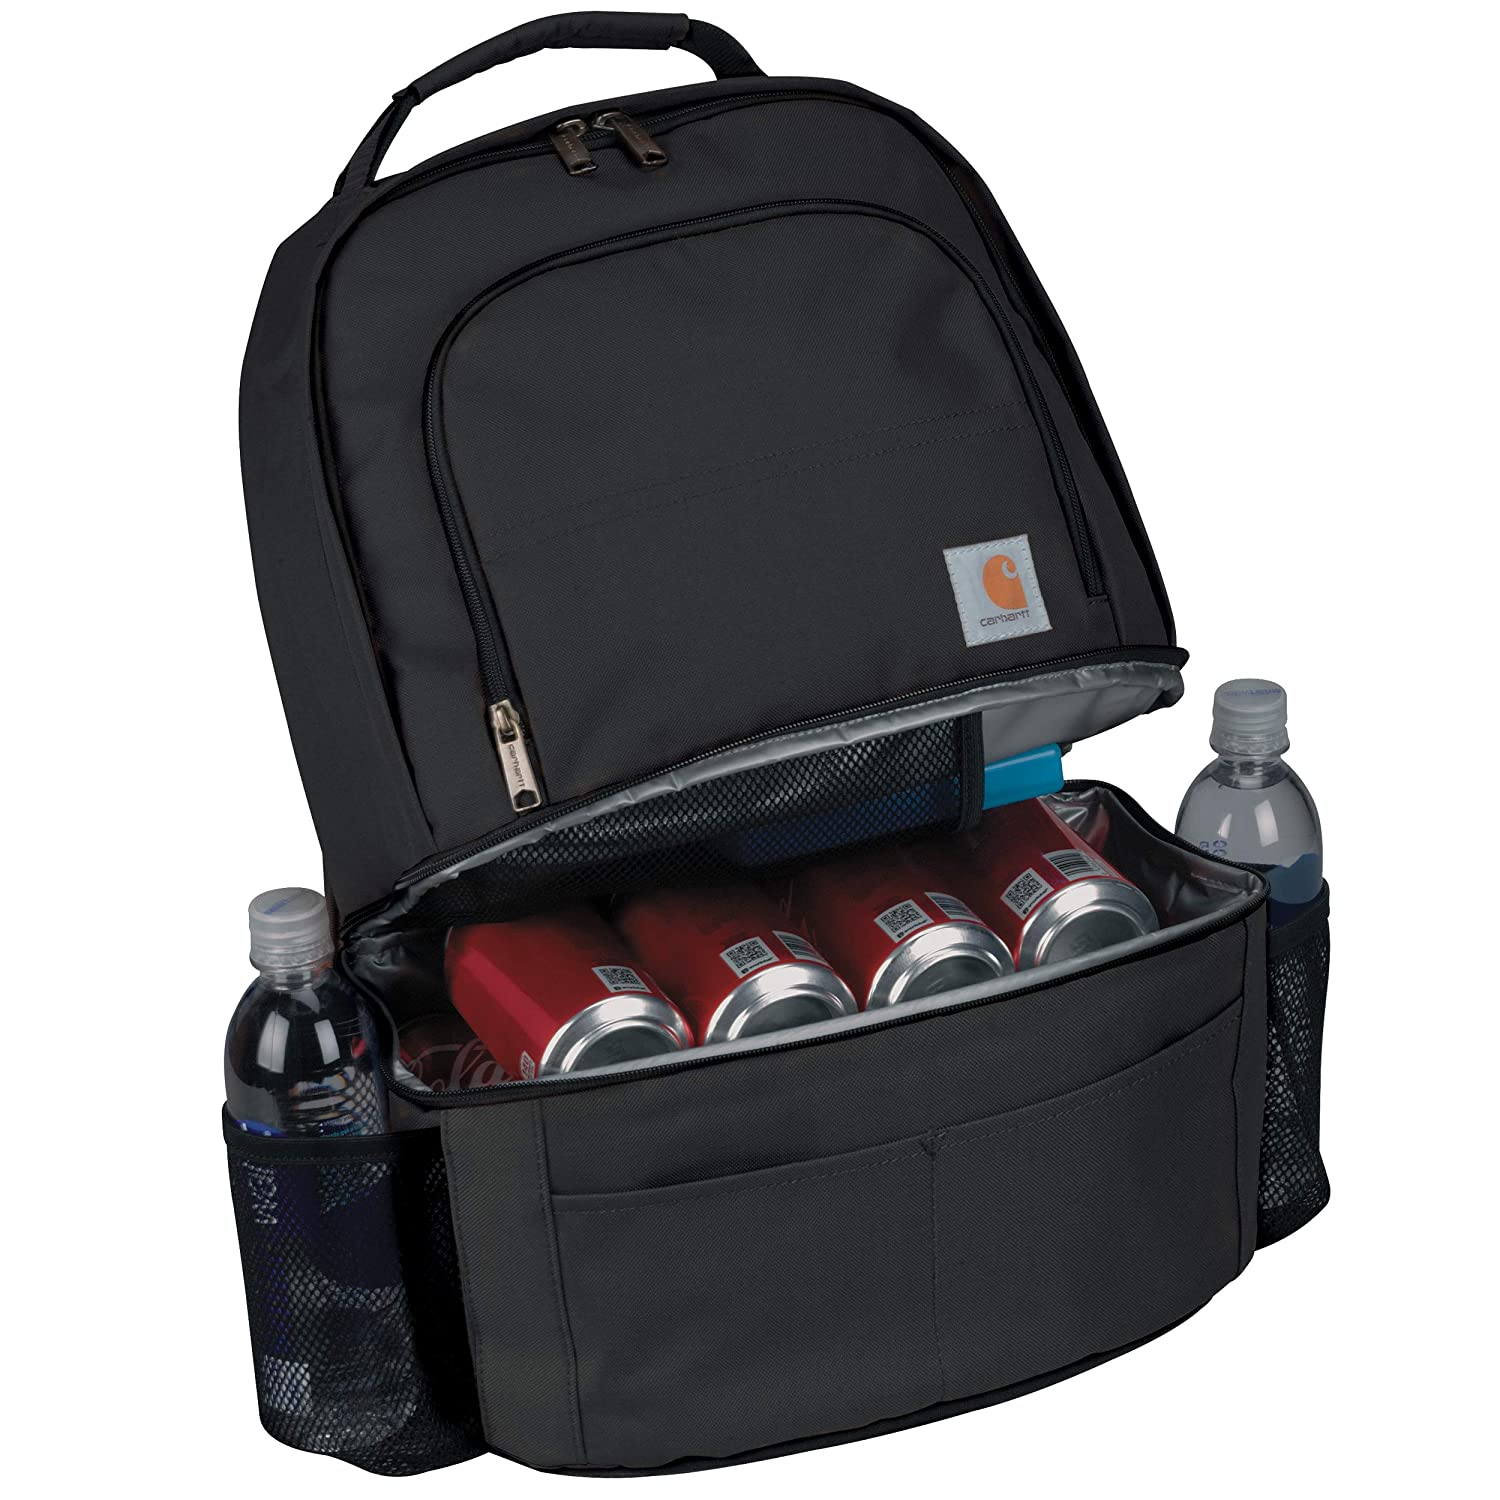 Amazon.com  Carhartt 2-in-1 Insulated Cooler Backpack